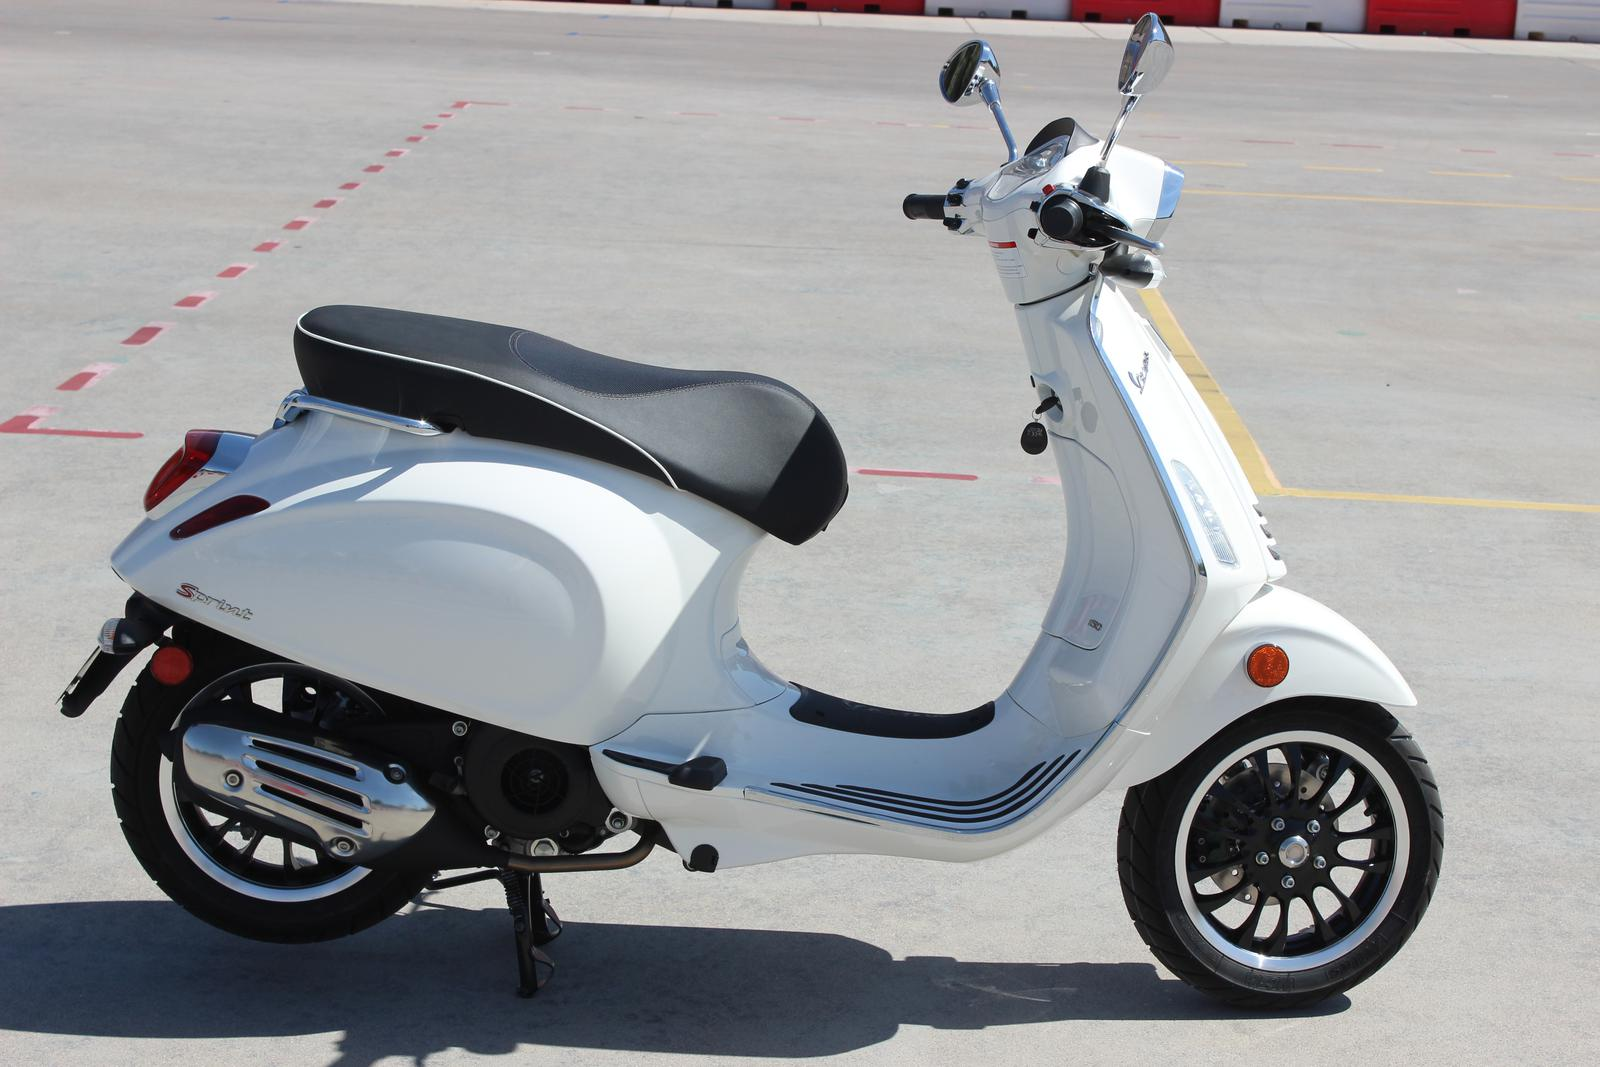 2019 Vespa Sprint 150 For In Scottsdale Az Go Motorcycles 480 609 1800